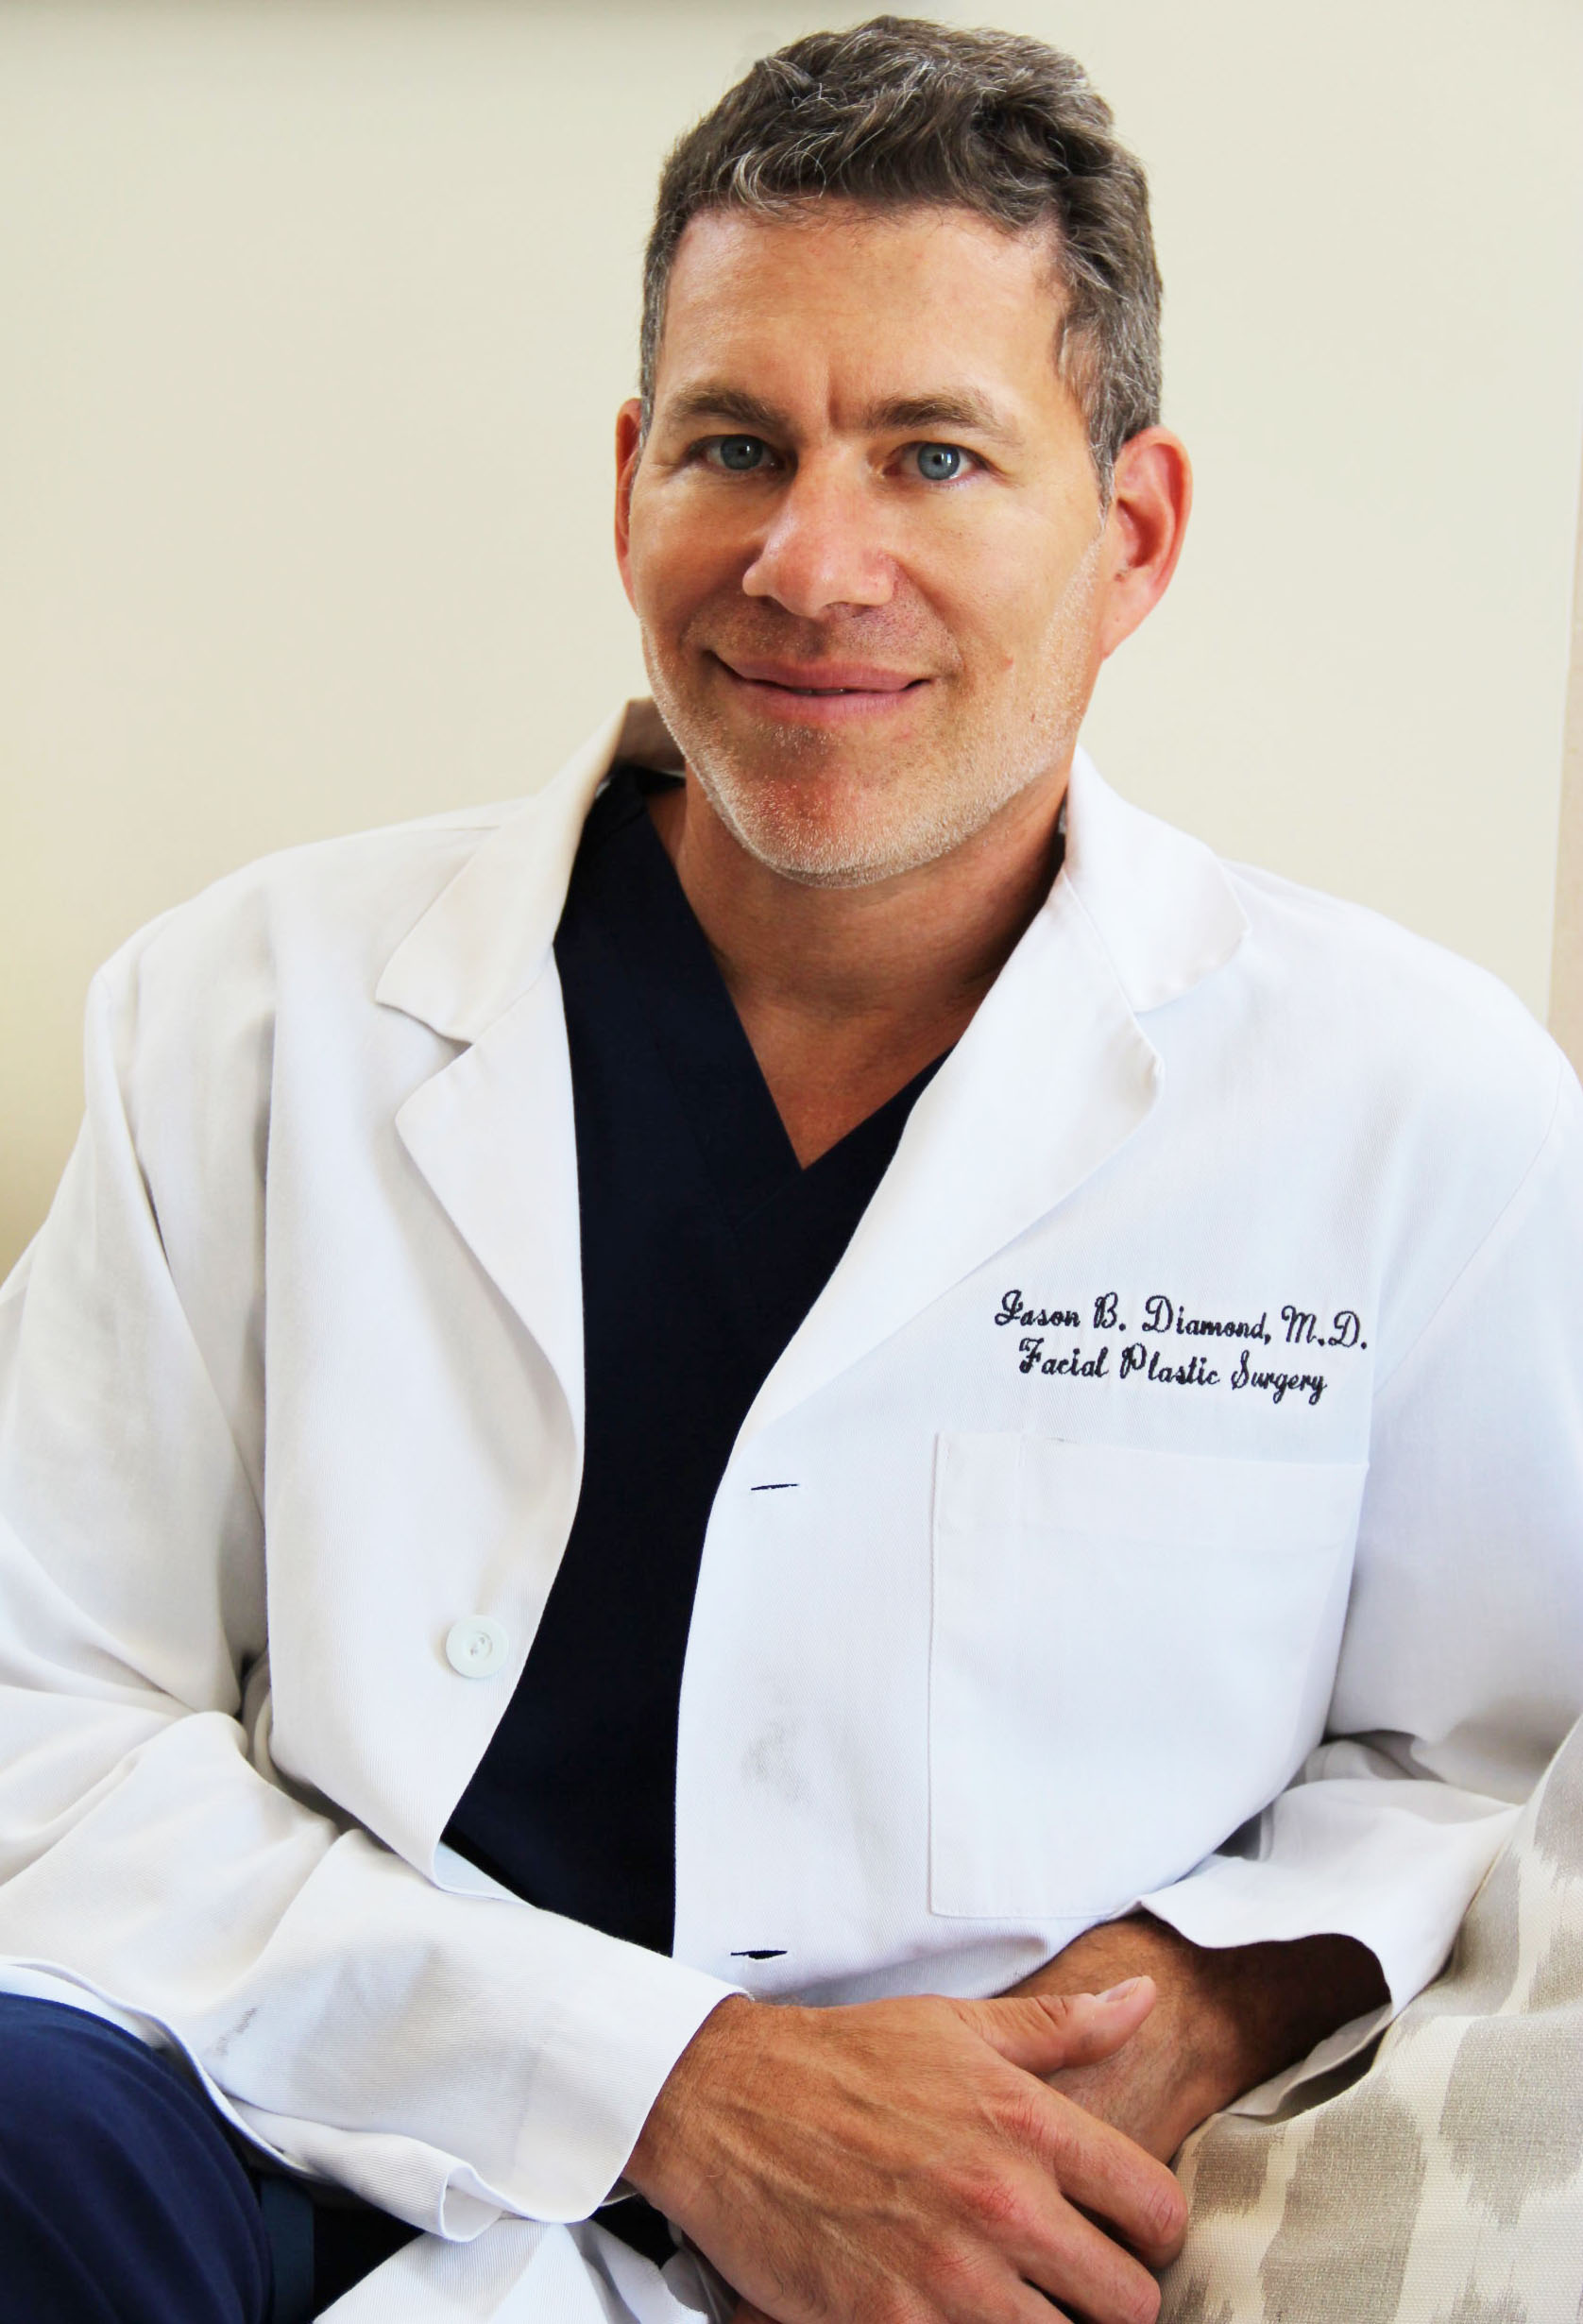 Dr. Jason Diamond